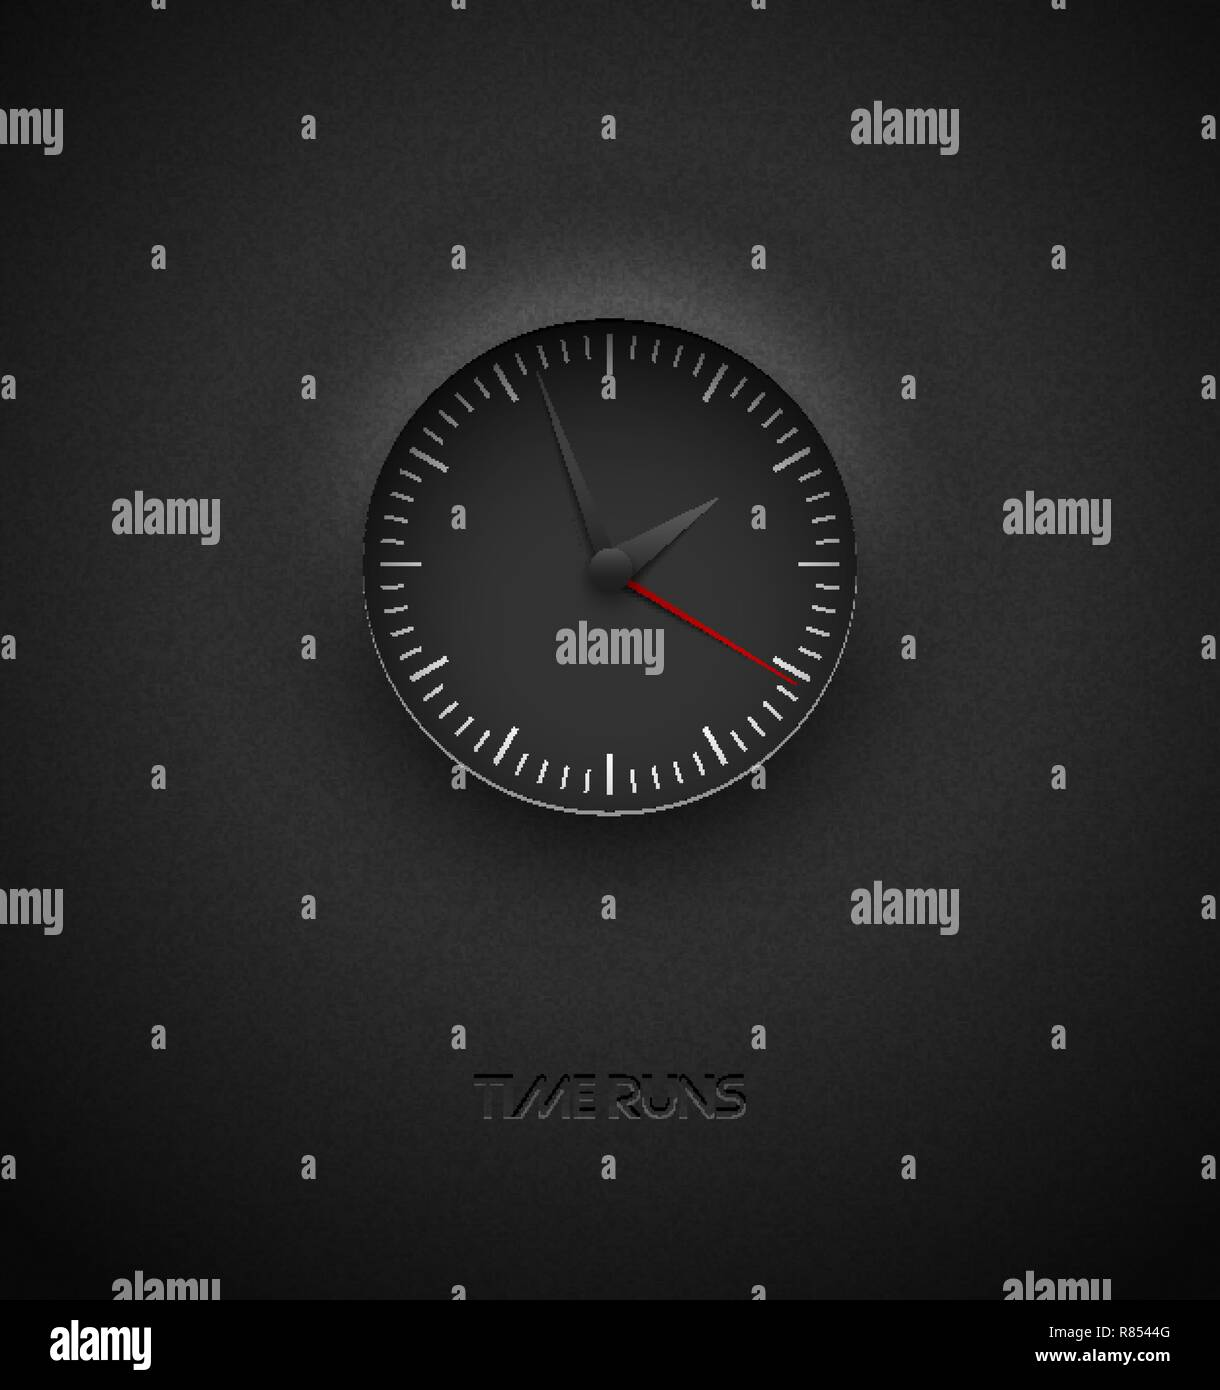 Realistic deep black round clock cut out on textured plastic dark background. White simple modern round scale. Vector icon design or ui screen - Stock Image